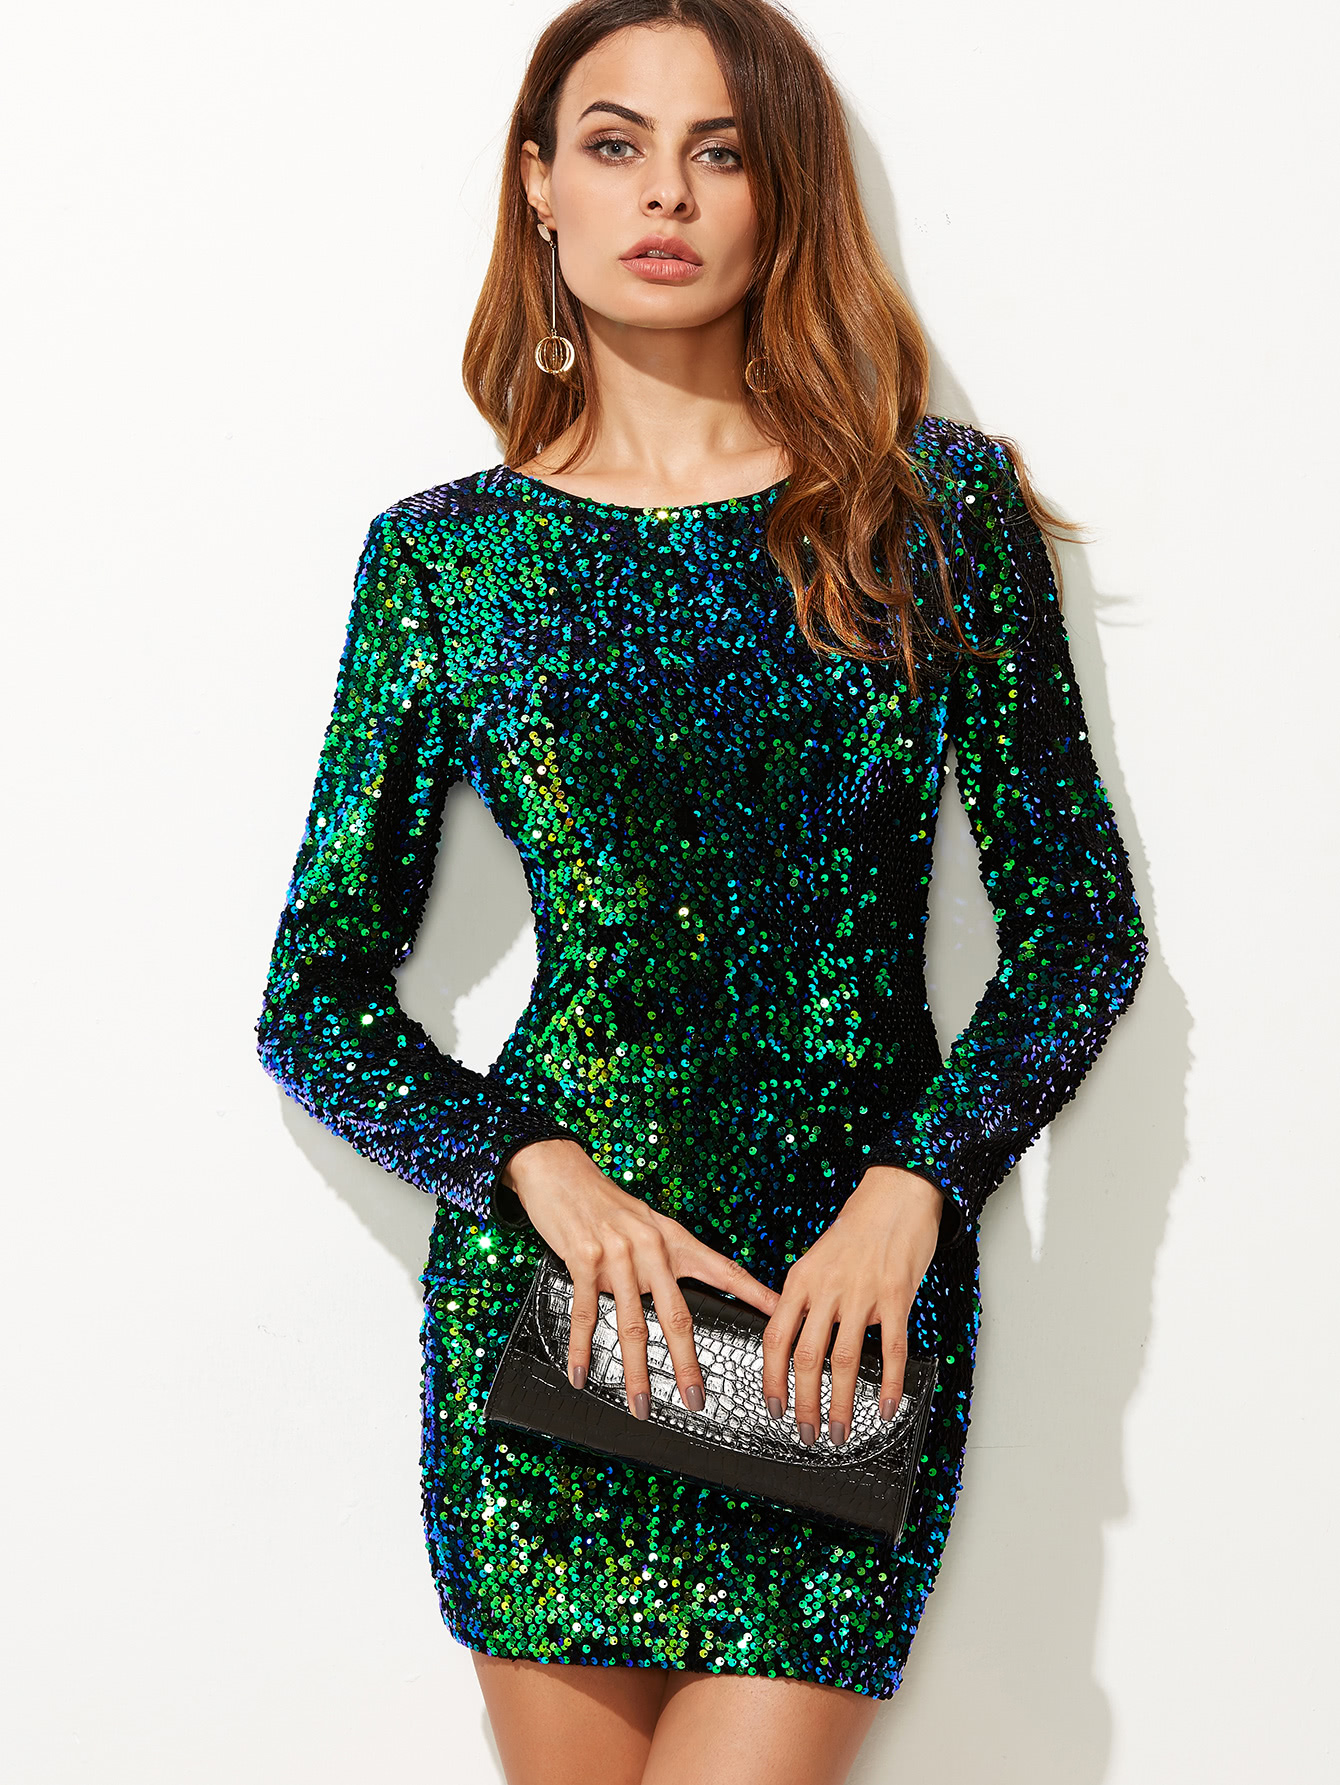 Shein New Year's Eve Party Wish list